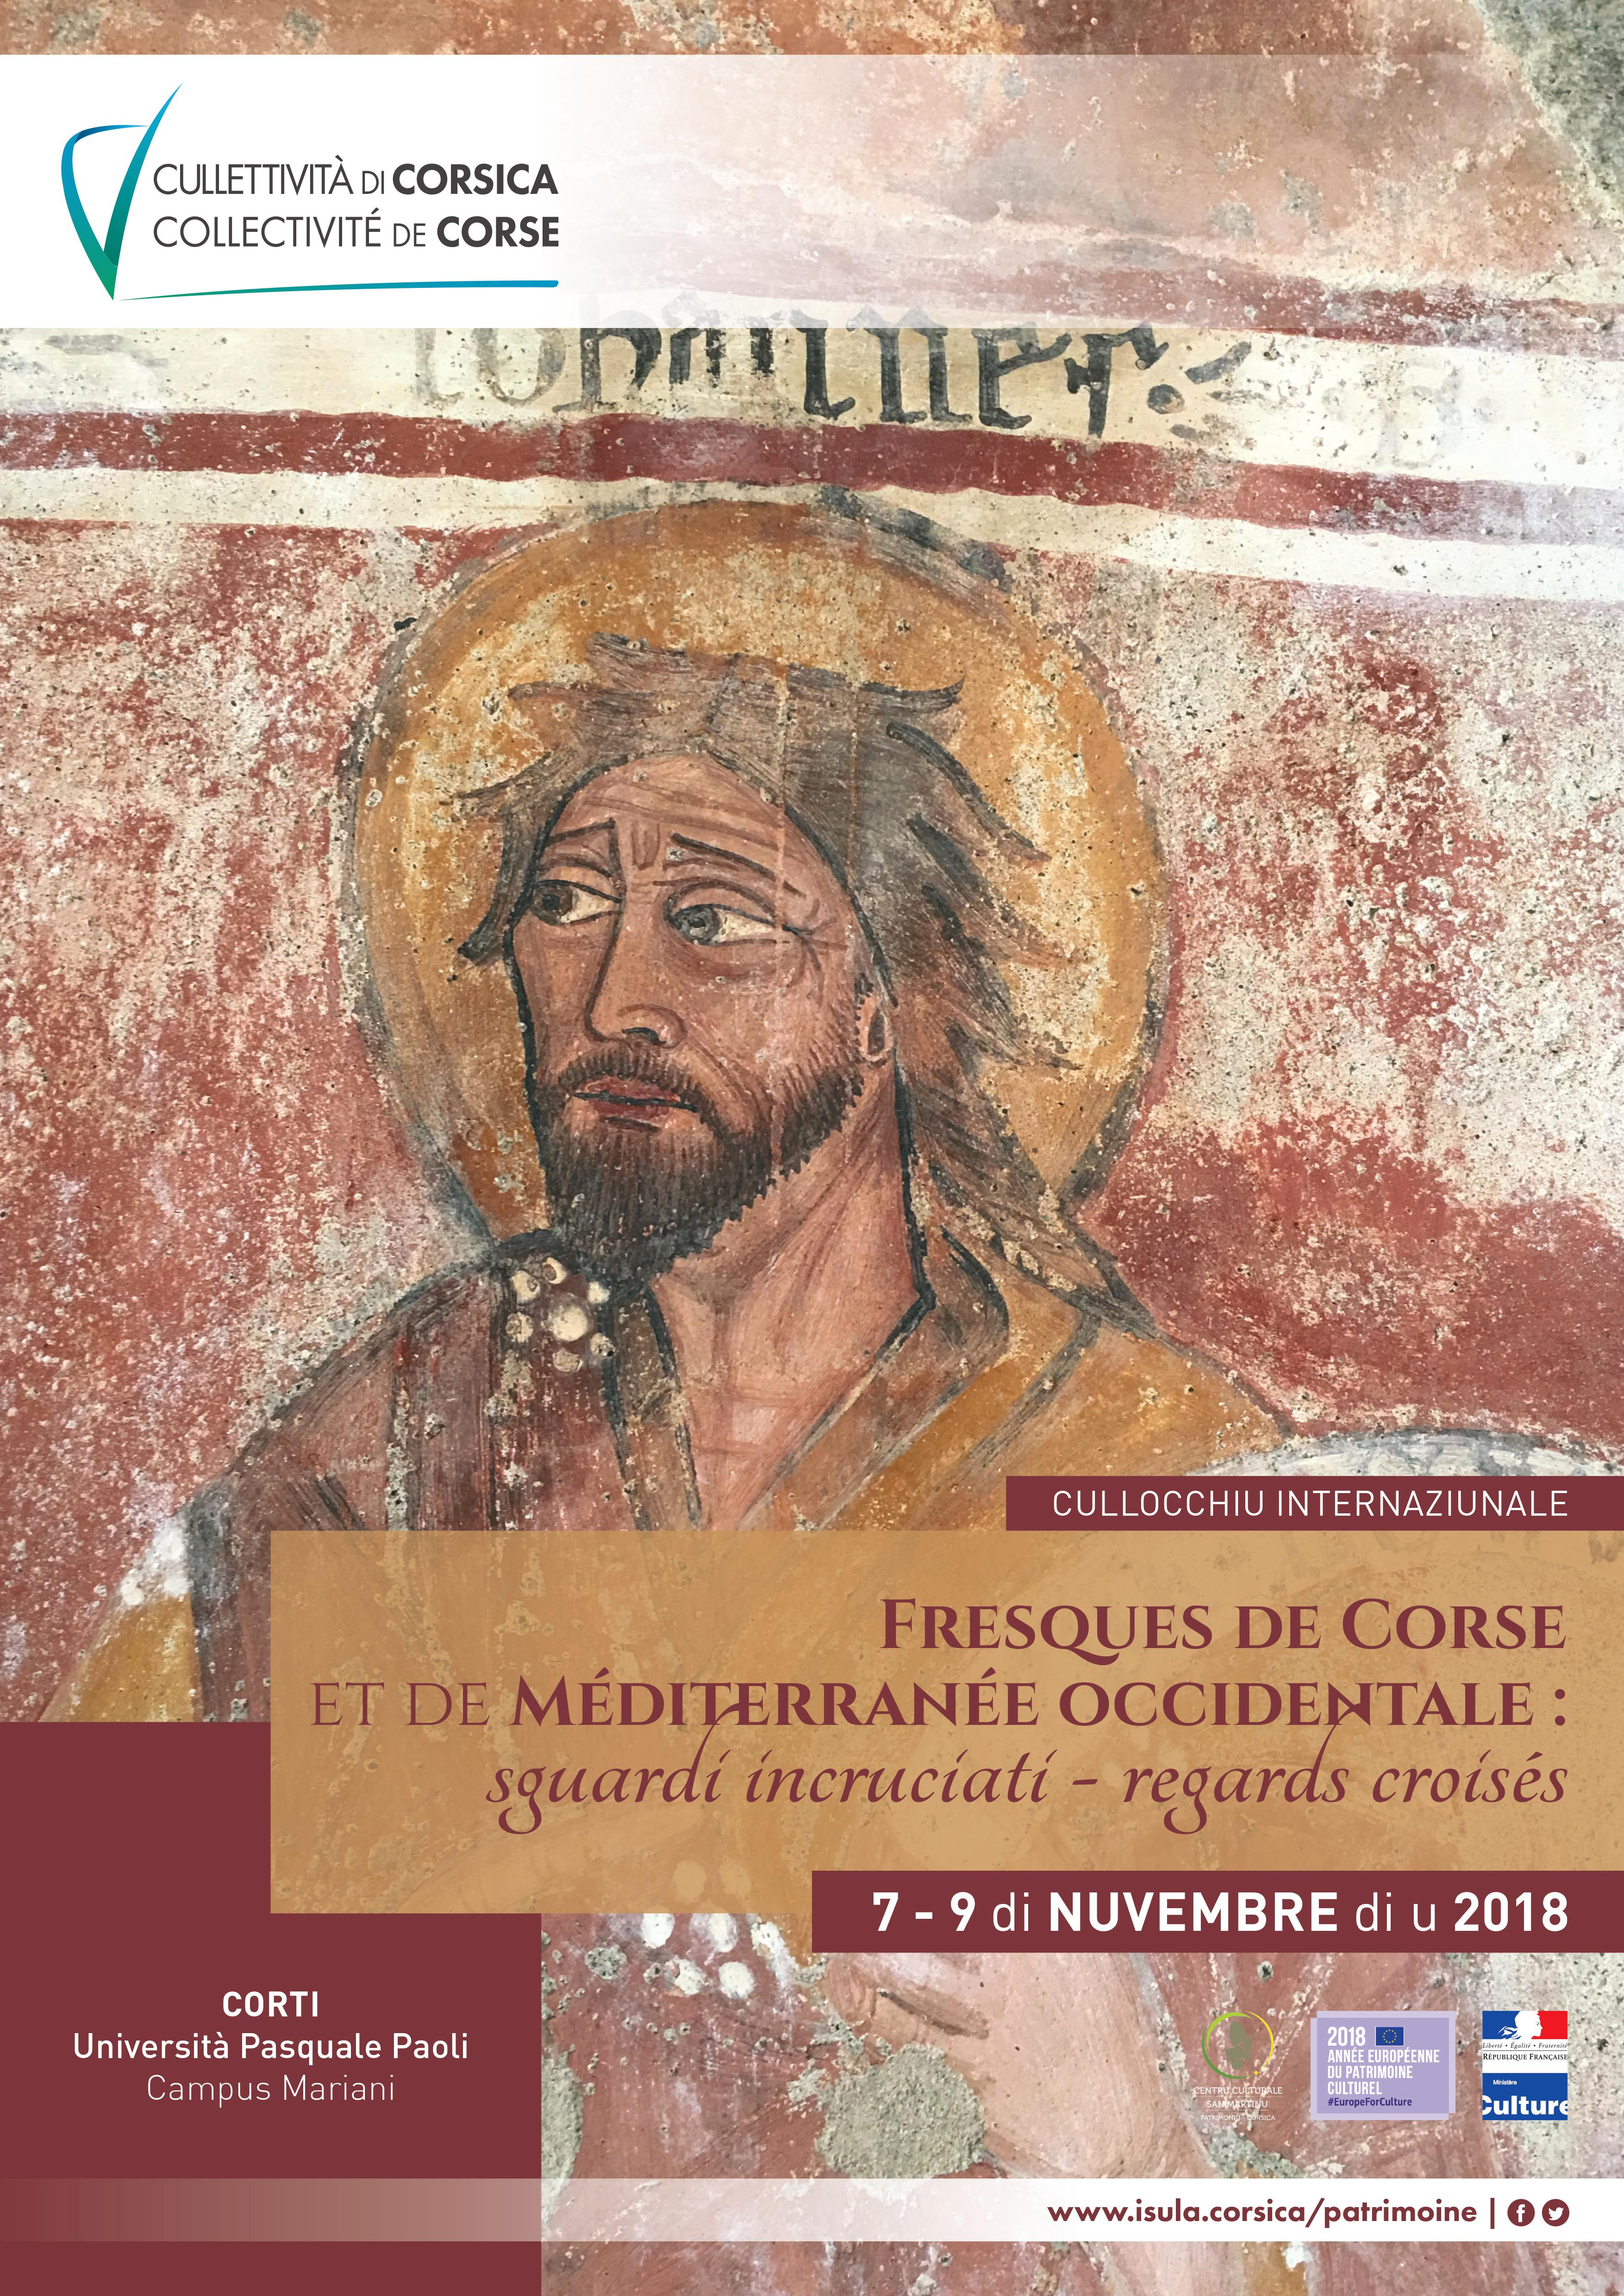 Colloque international sur les chapelles à fresques de Corse les 7, 8 et 9 novembre 2018 à Corti